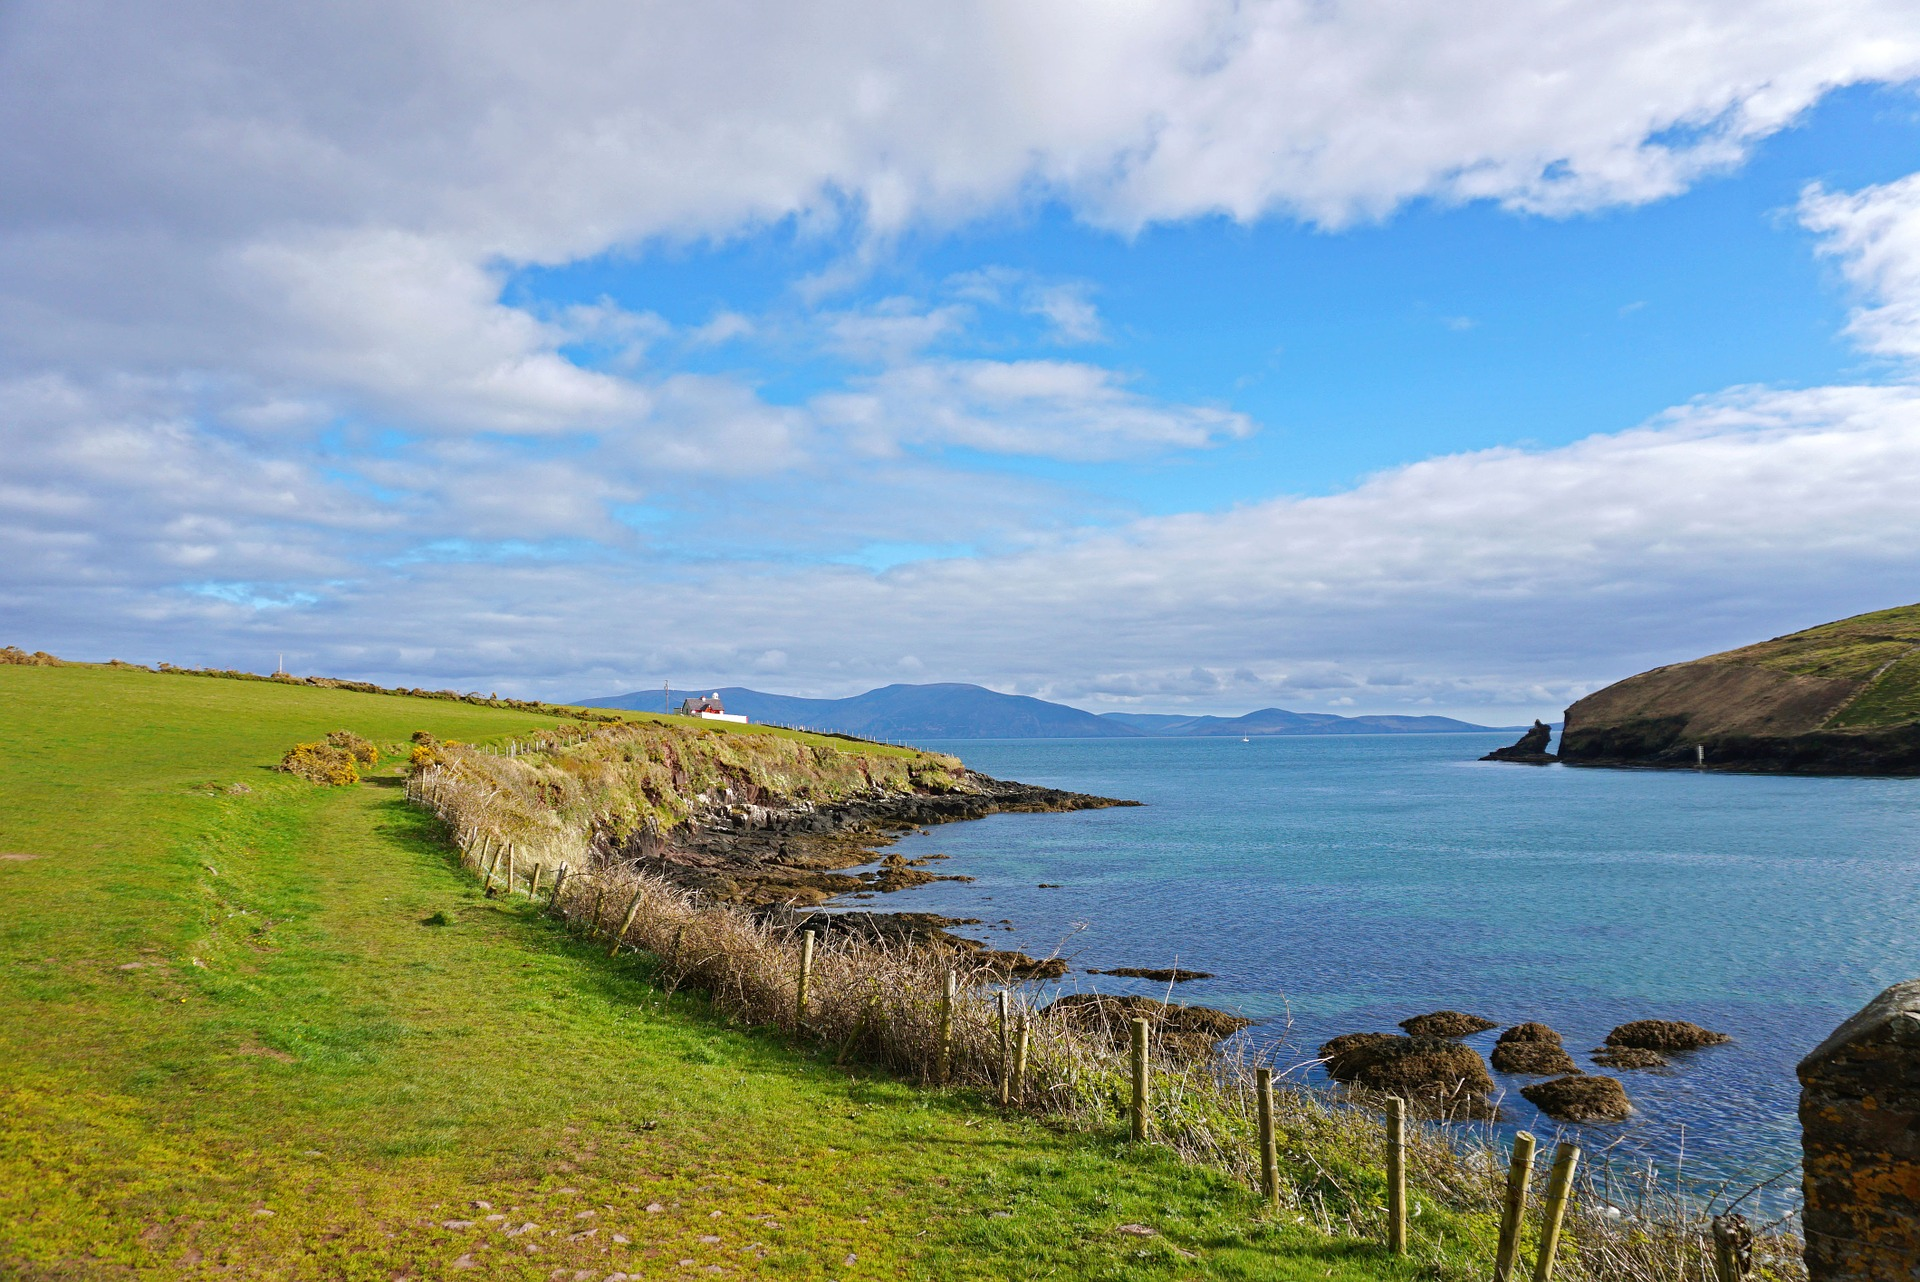 https://pixabay.com/en/dingle-ireland-ocean-landscape-1404988/